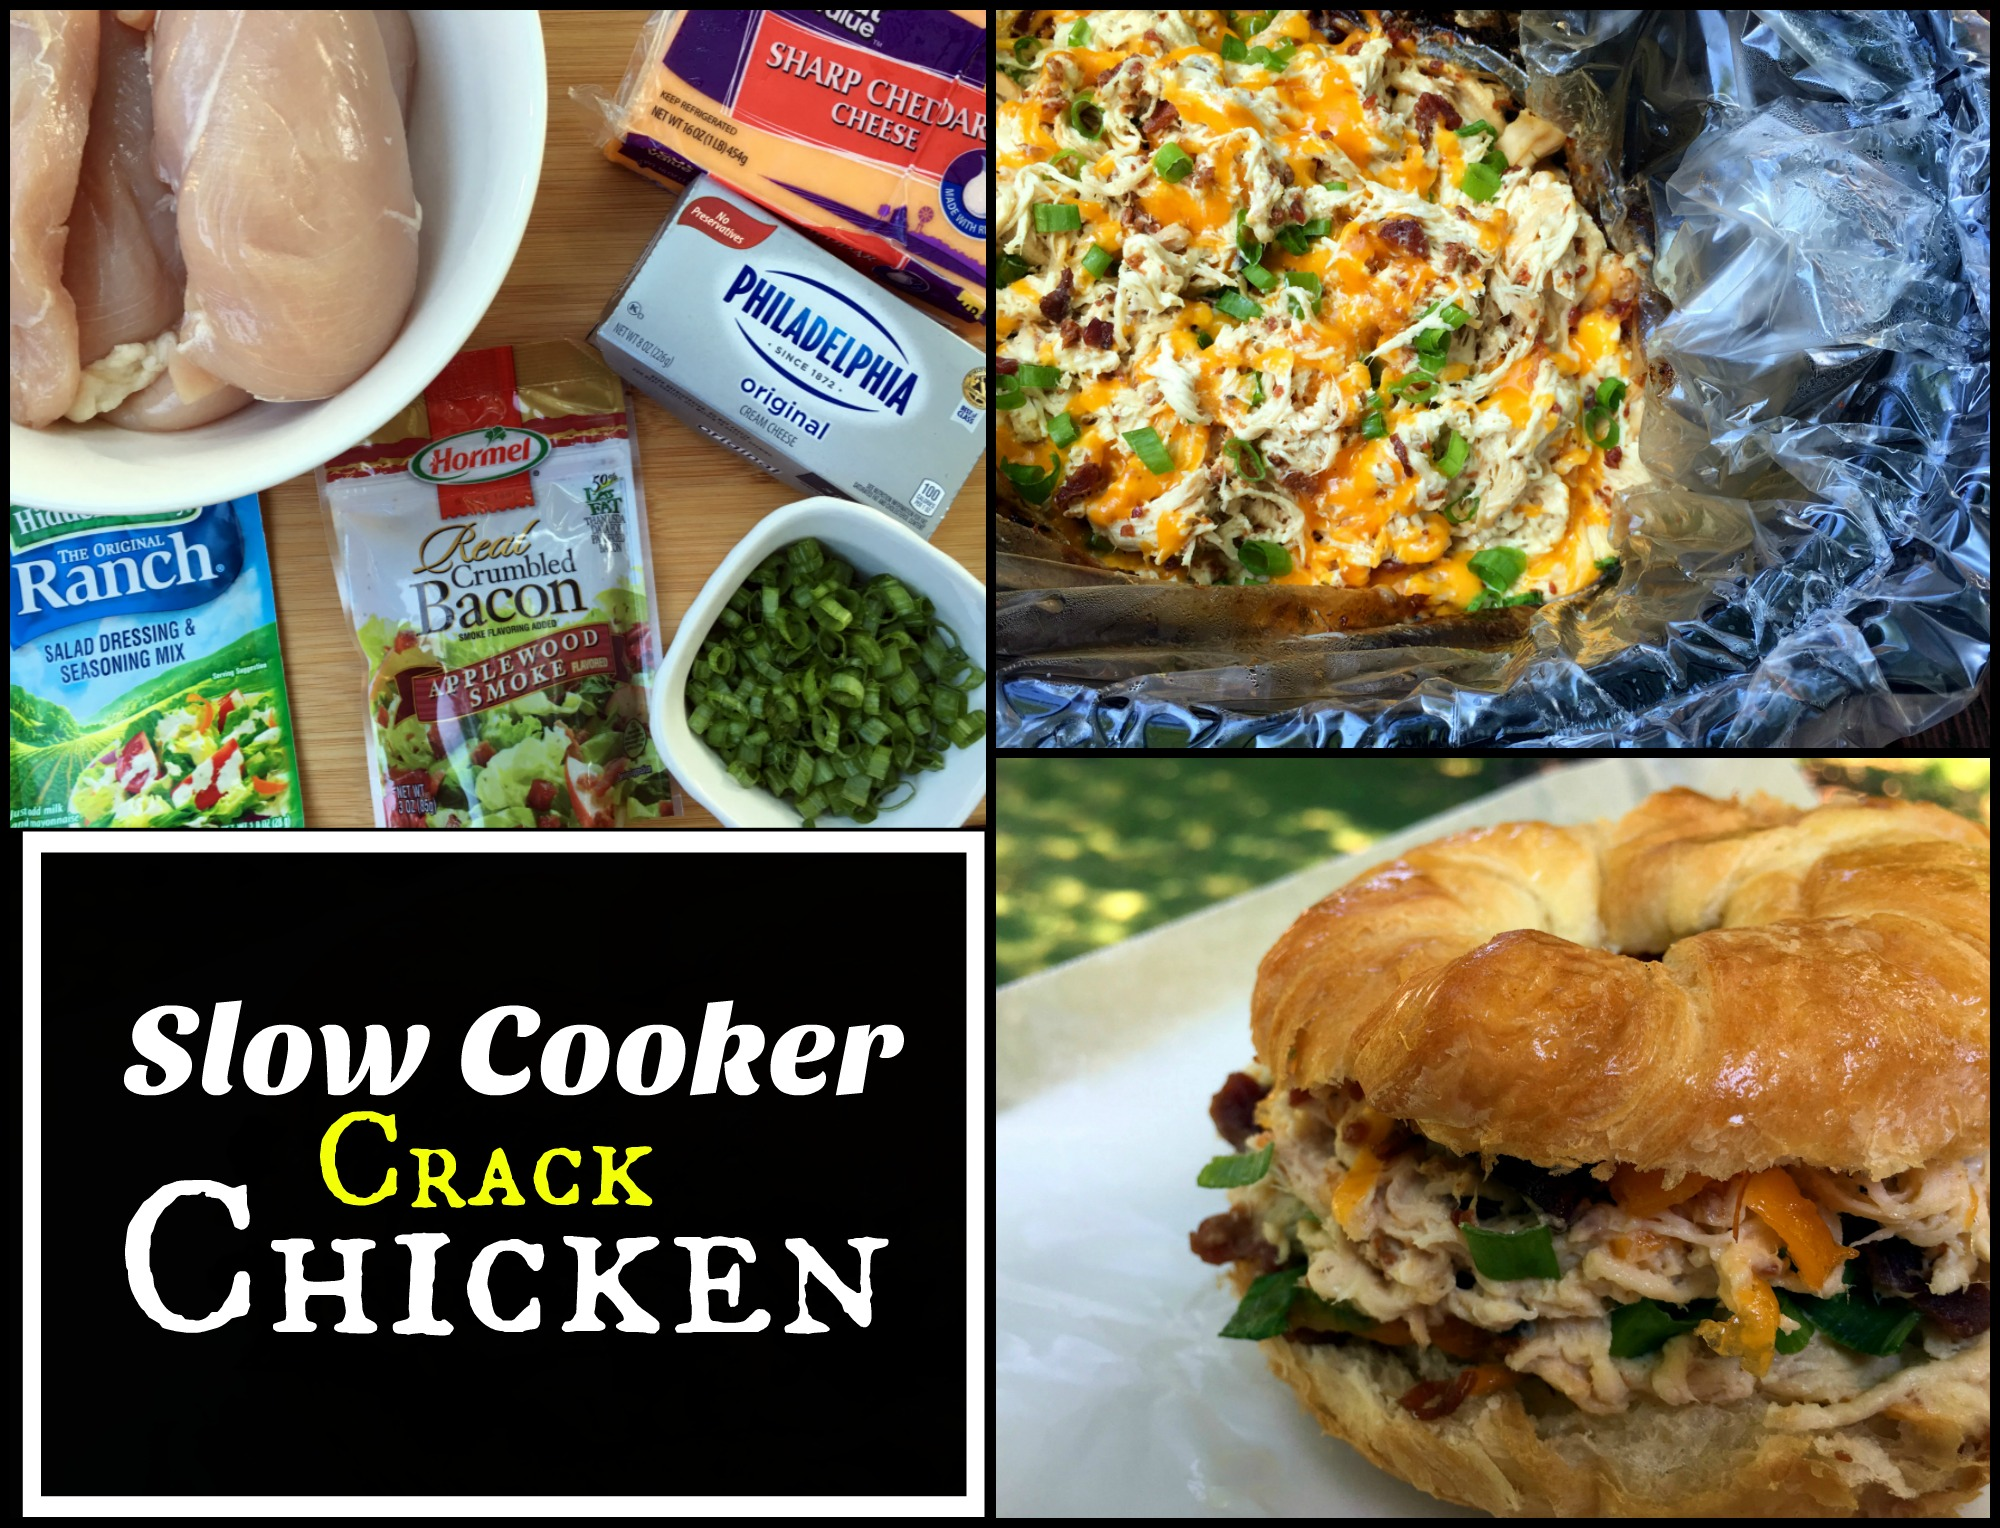 Slow cooker crack chicken aunt bees recipes forumfinder Choice Image